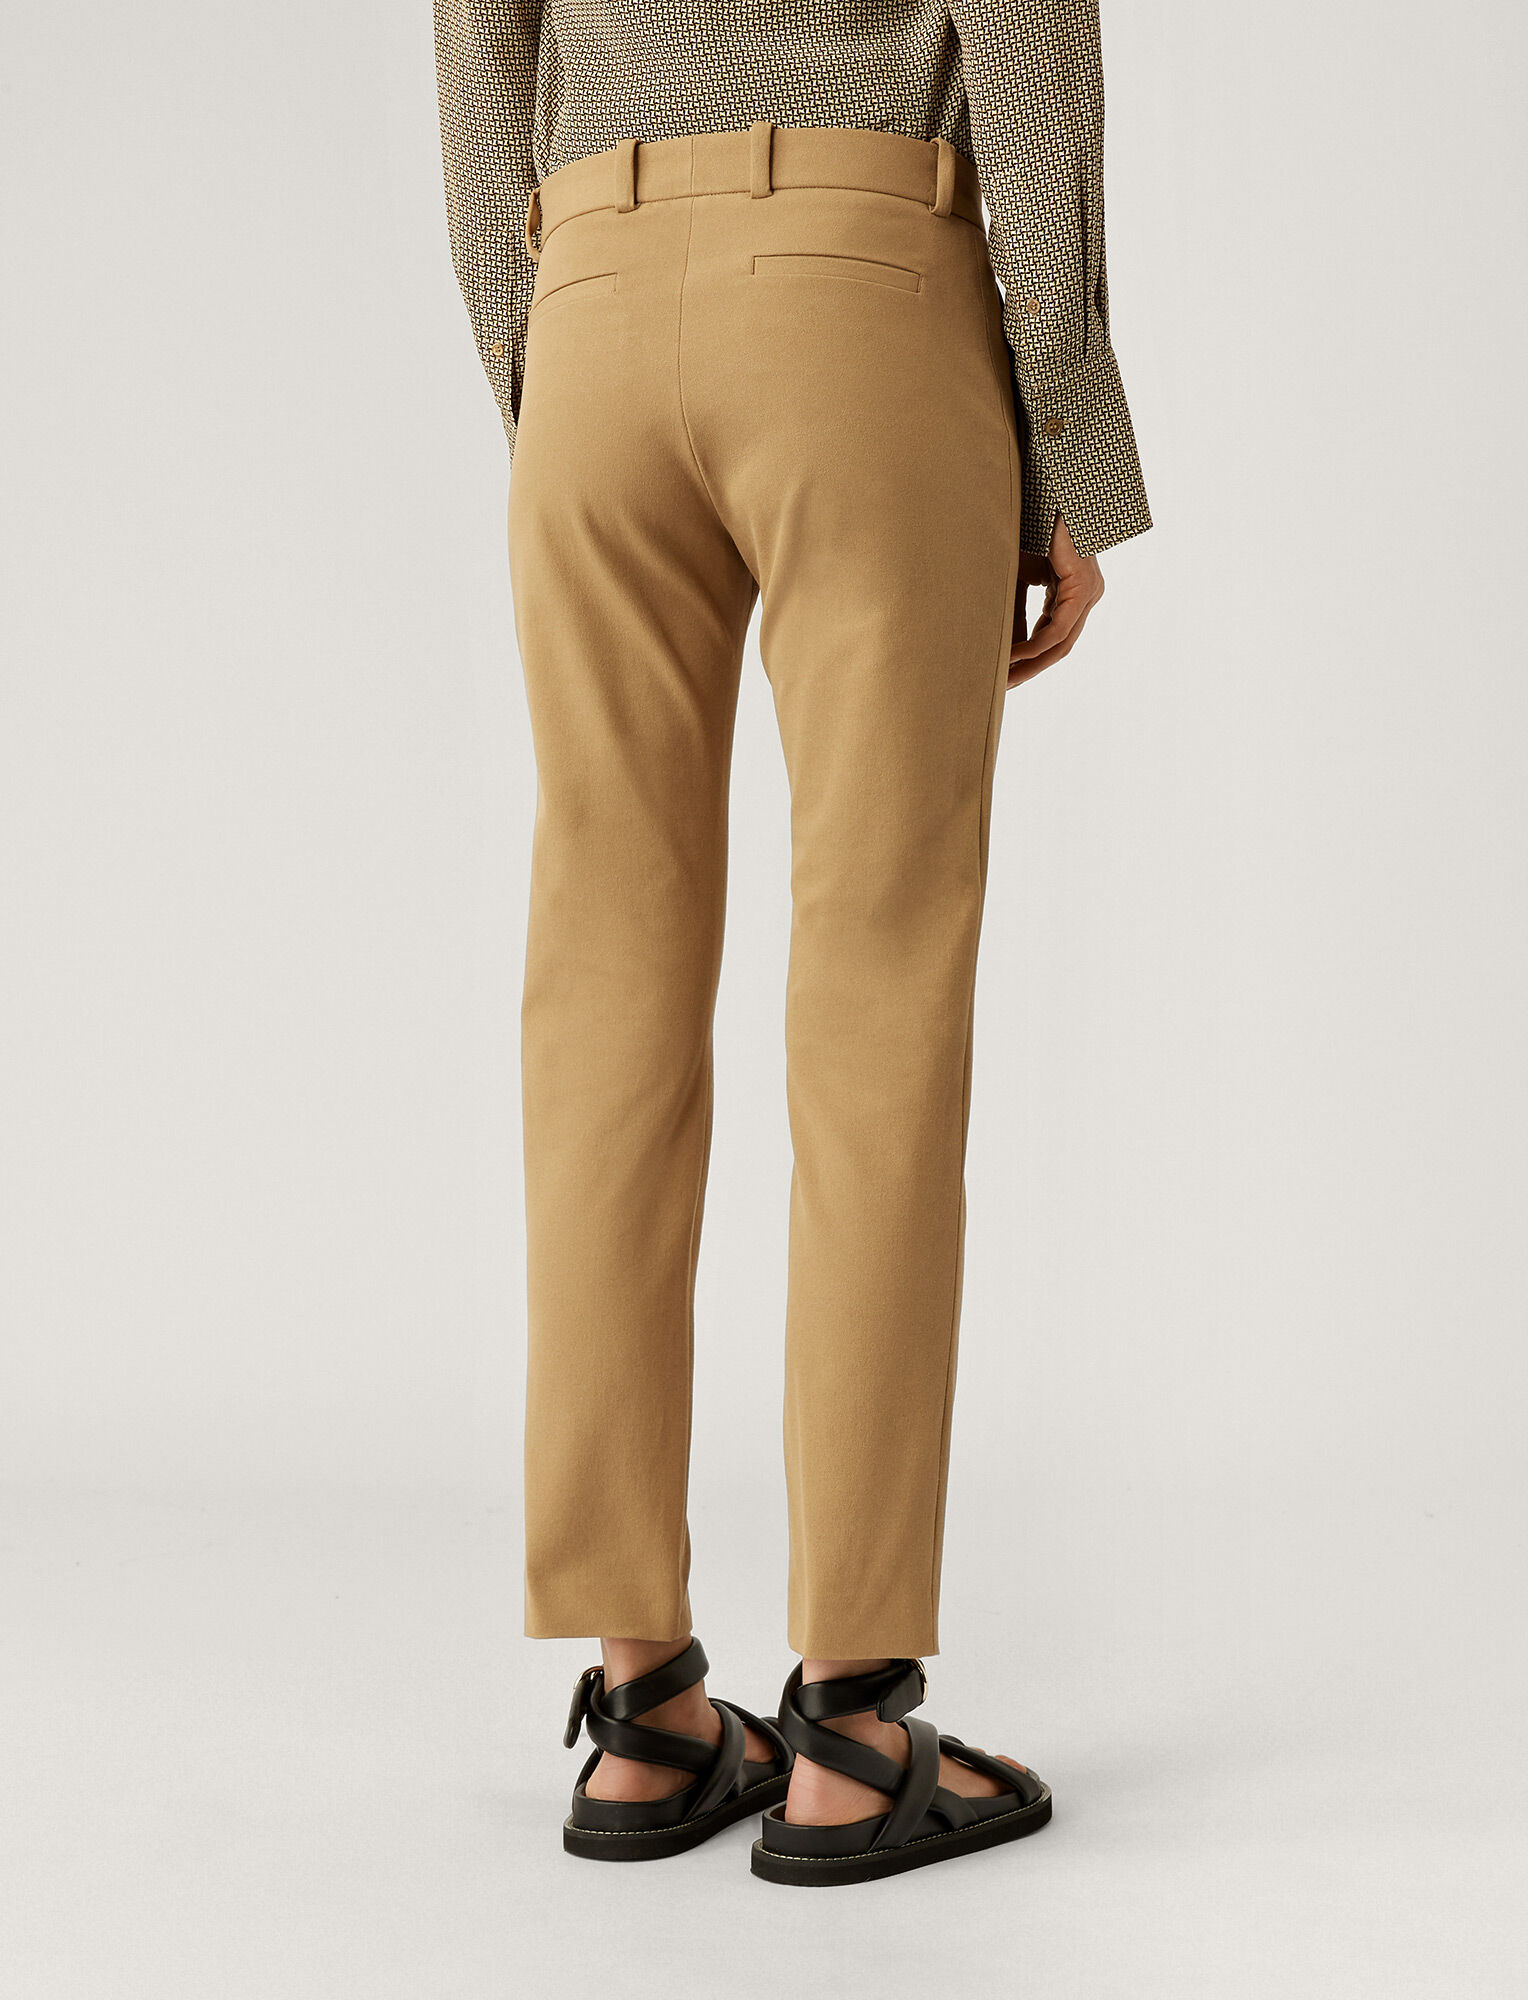 Joseph, New Elliston Gabardine Stretch Trousers, in CAMEL